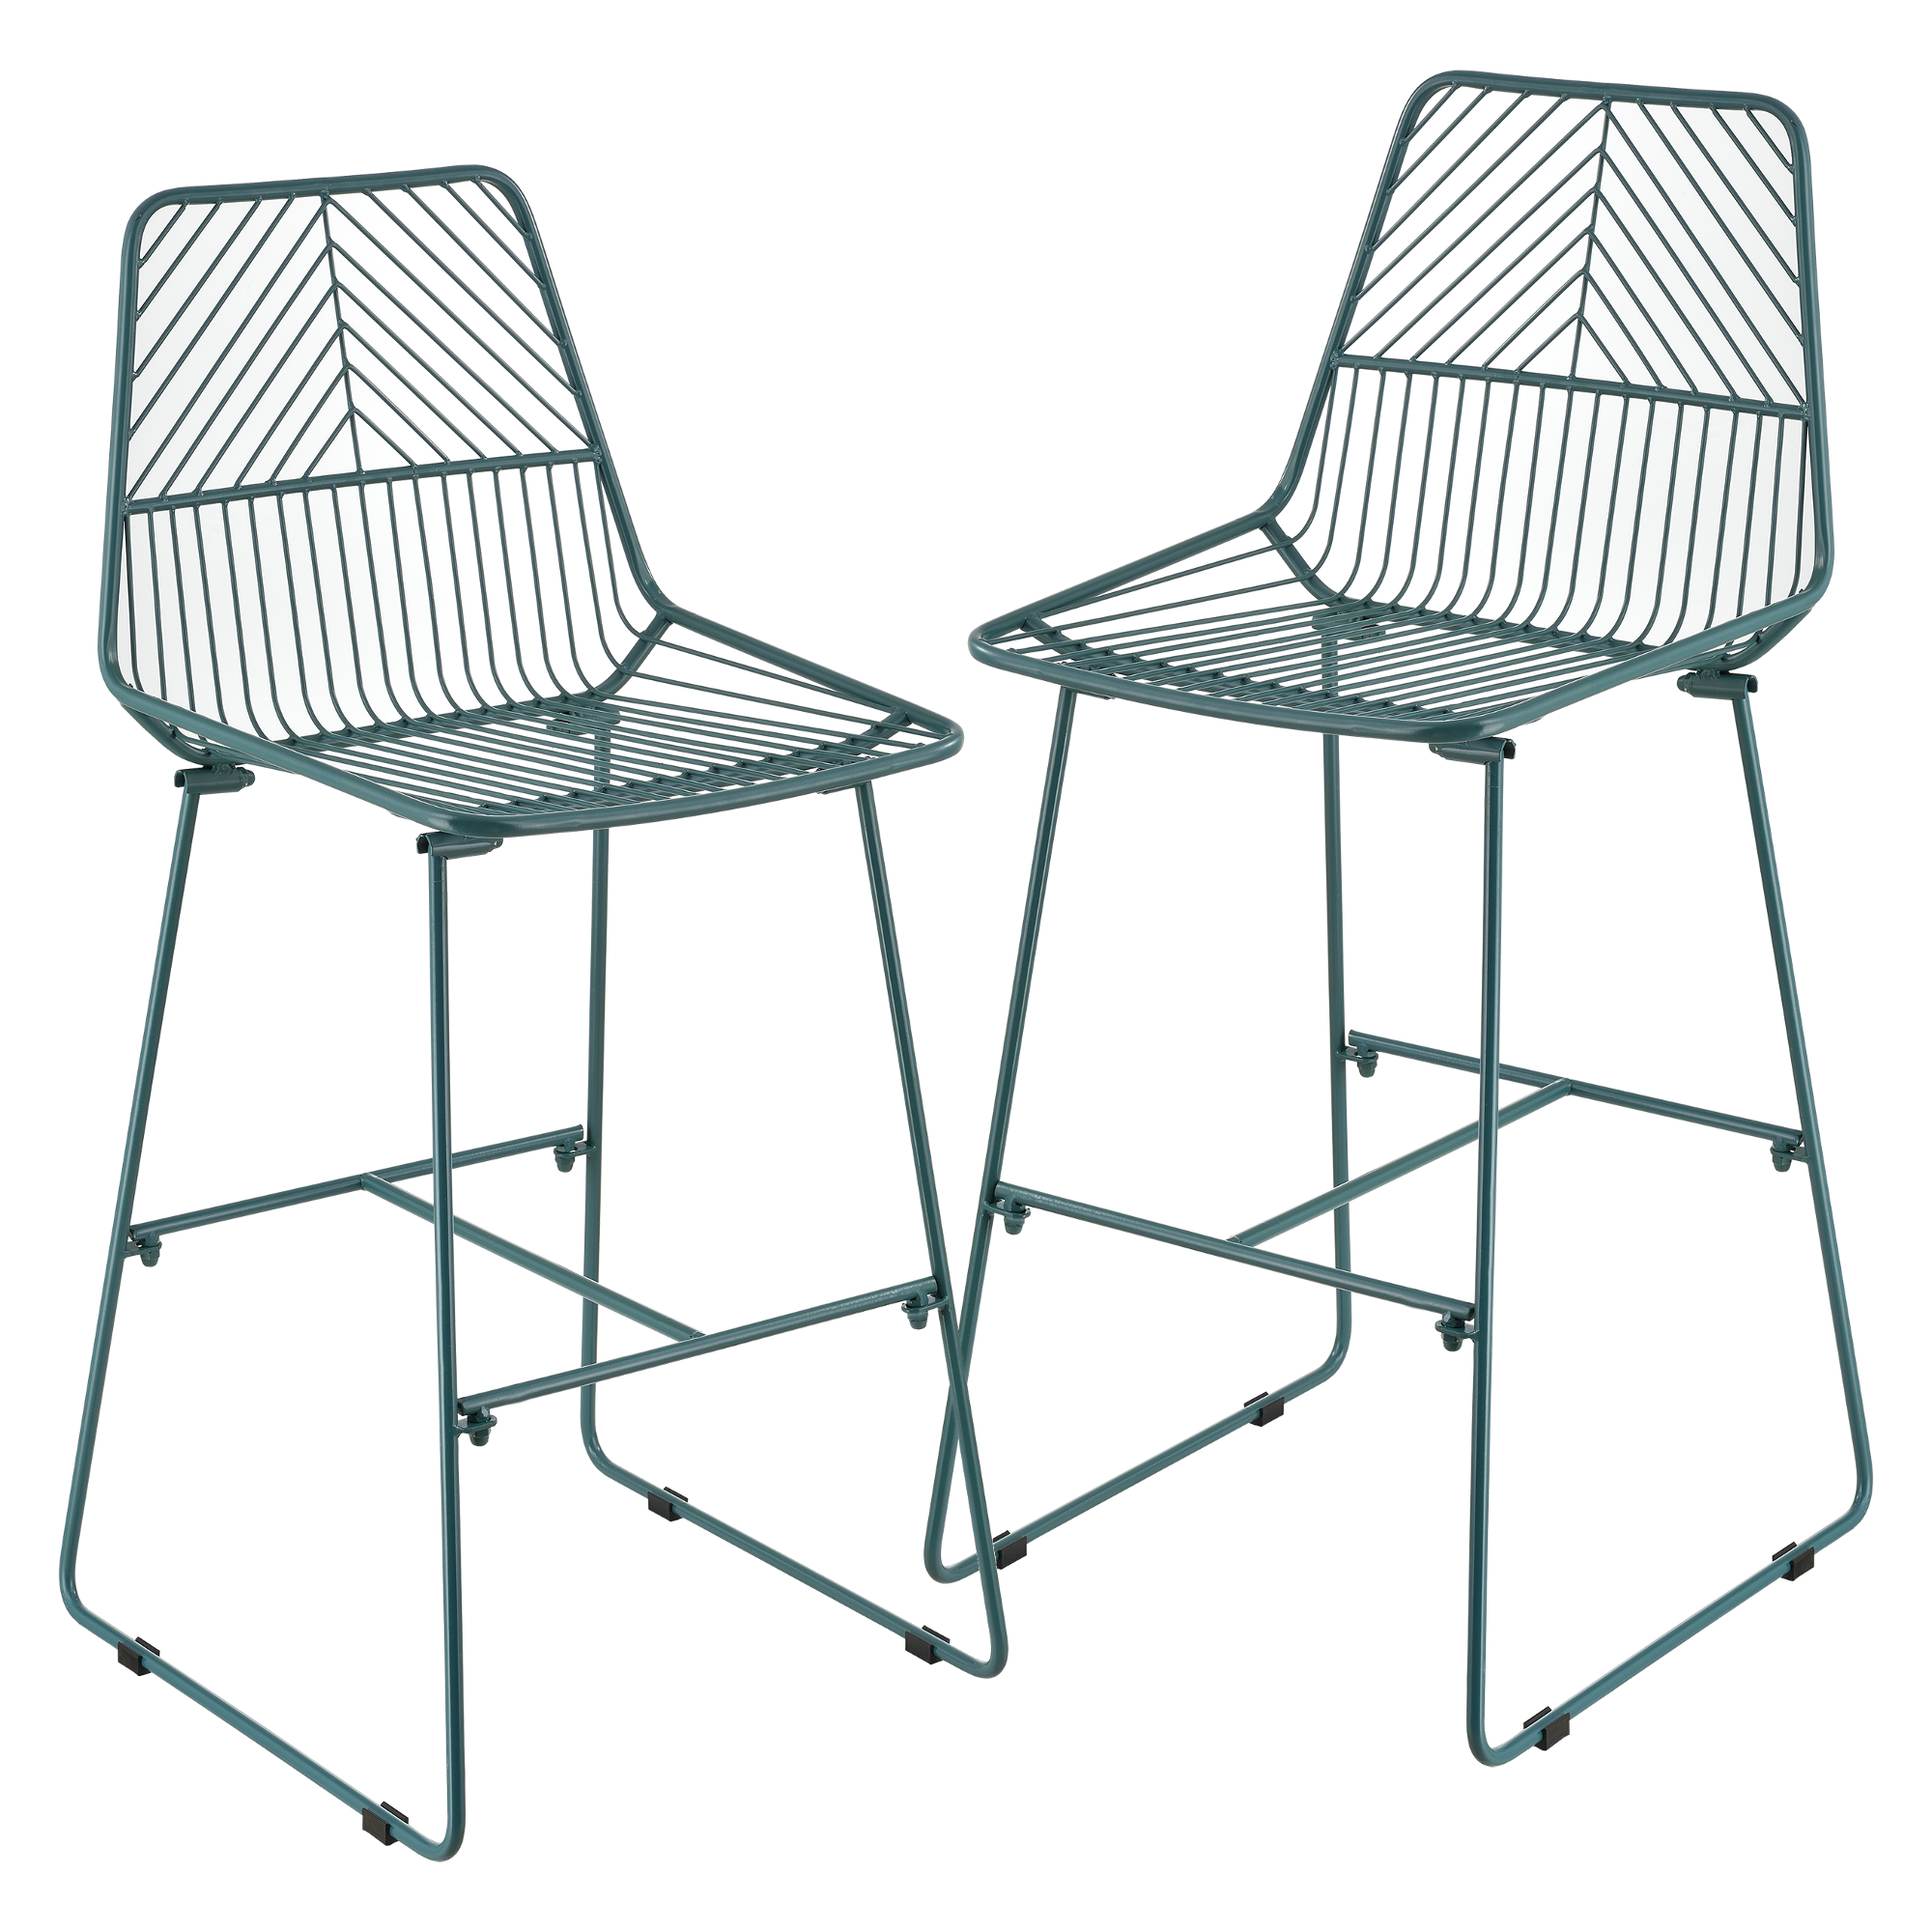 2x barhocker design barstuhl bar theken hocker for Barhocker metall